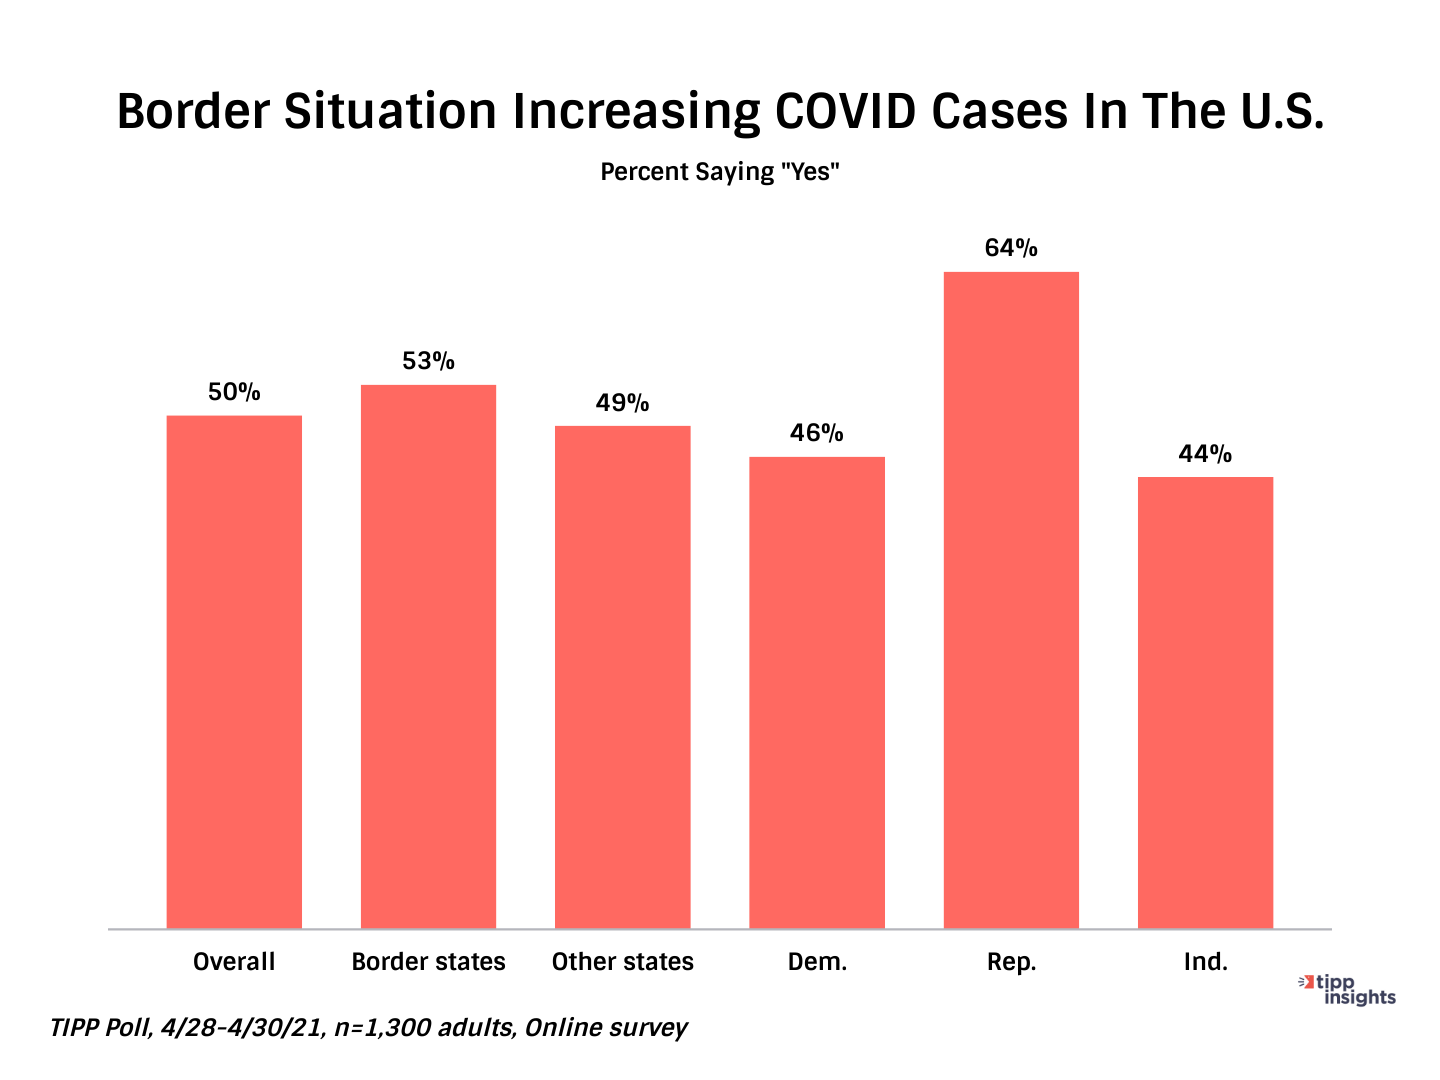 TIPP Poll Results: Percent who say Yes to increase in Border Covid Cases - Chart